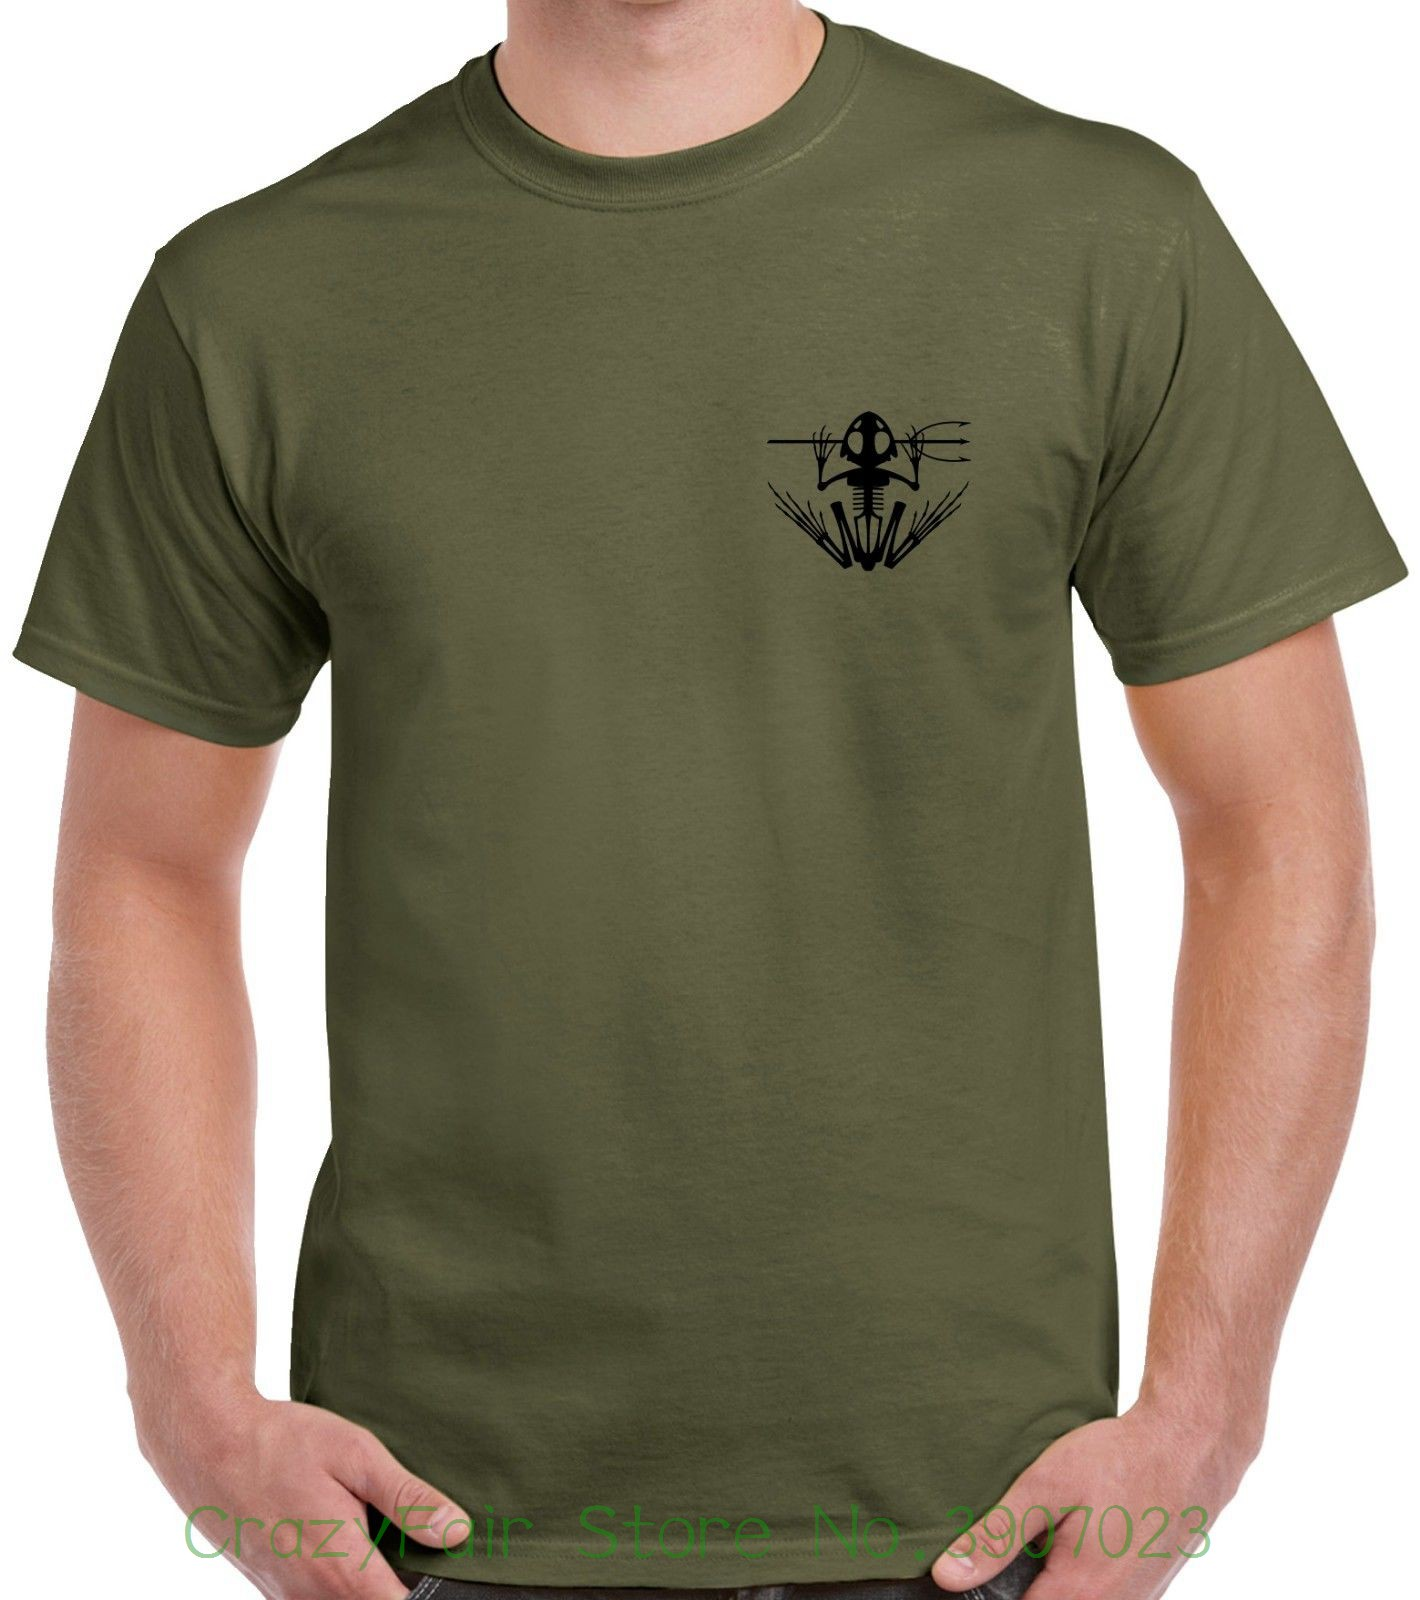 Navy Seal   T  -  shirt   - 2 Sided - Only Easy Day Was Yesterday - 1238 - 2 Summer Style   T     Shirt